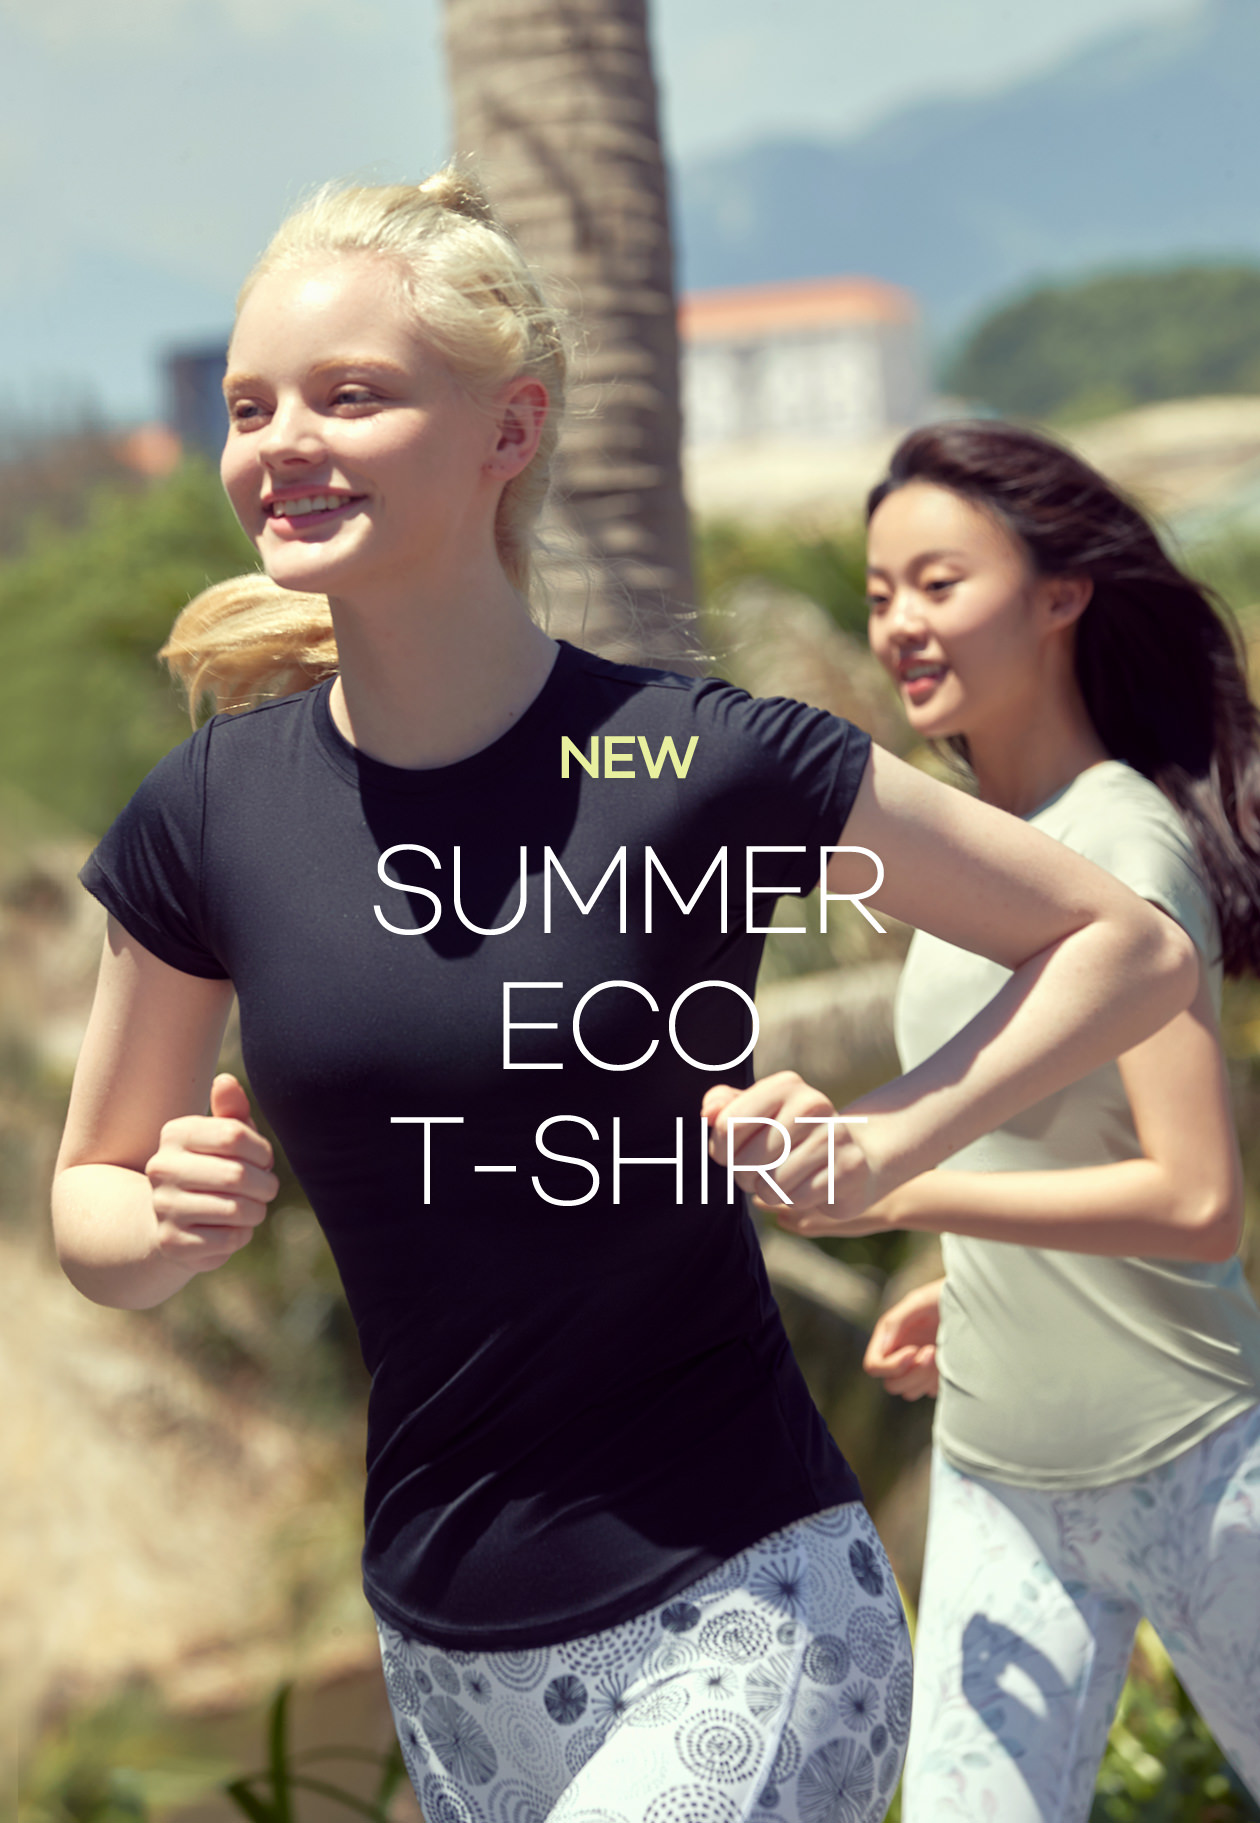 new summer eco t-shirt